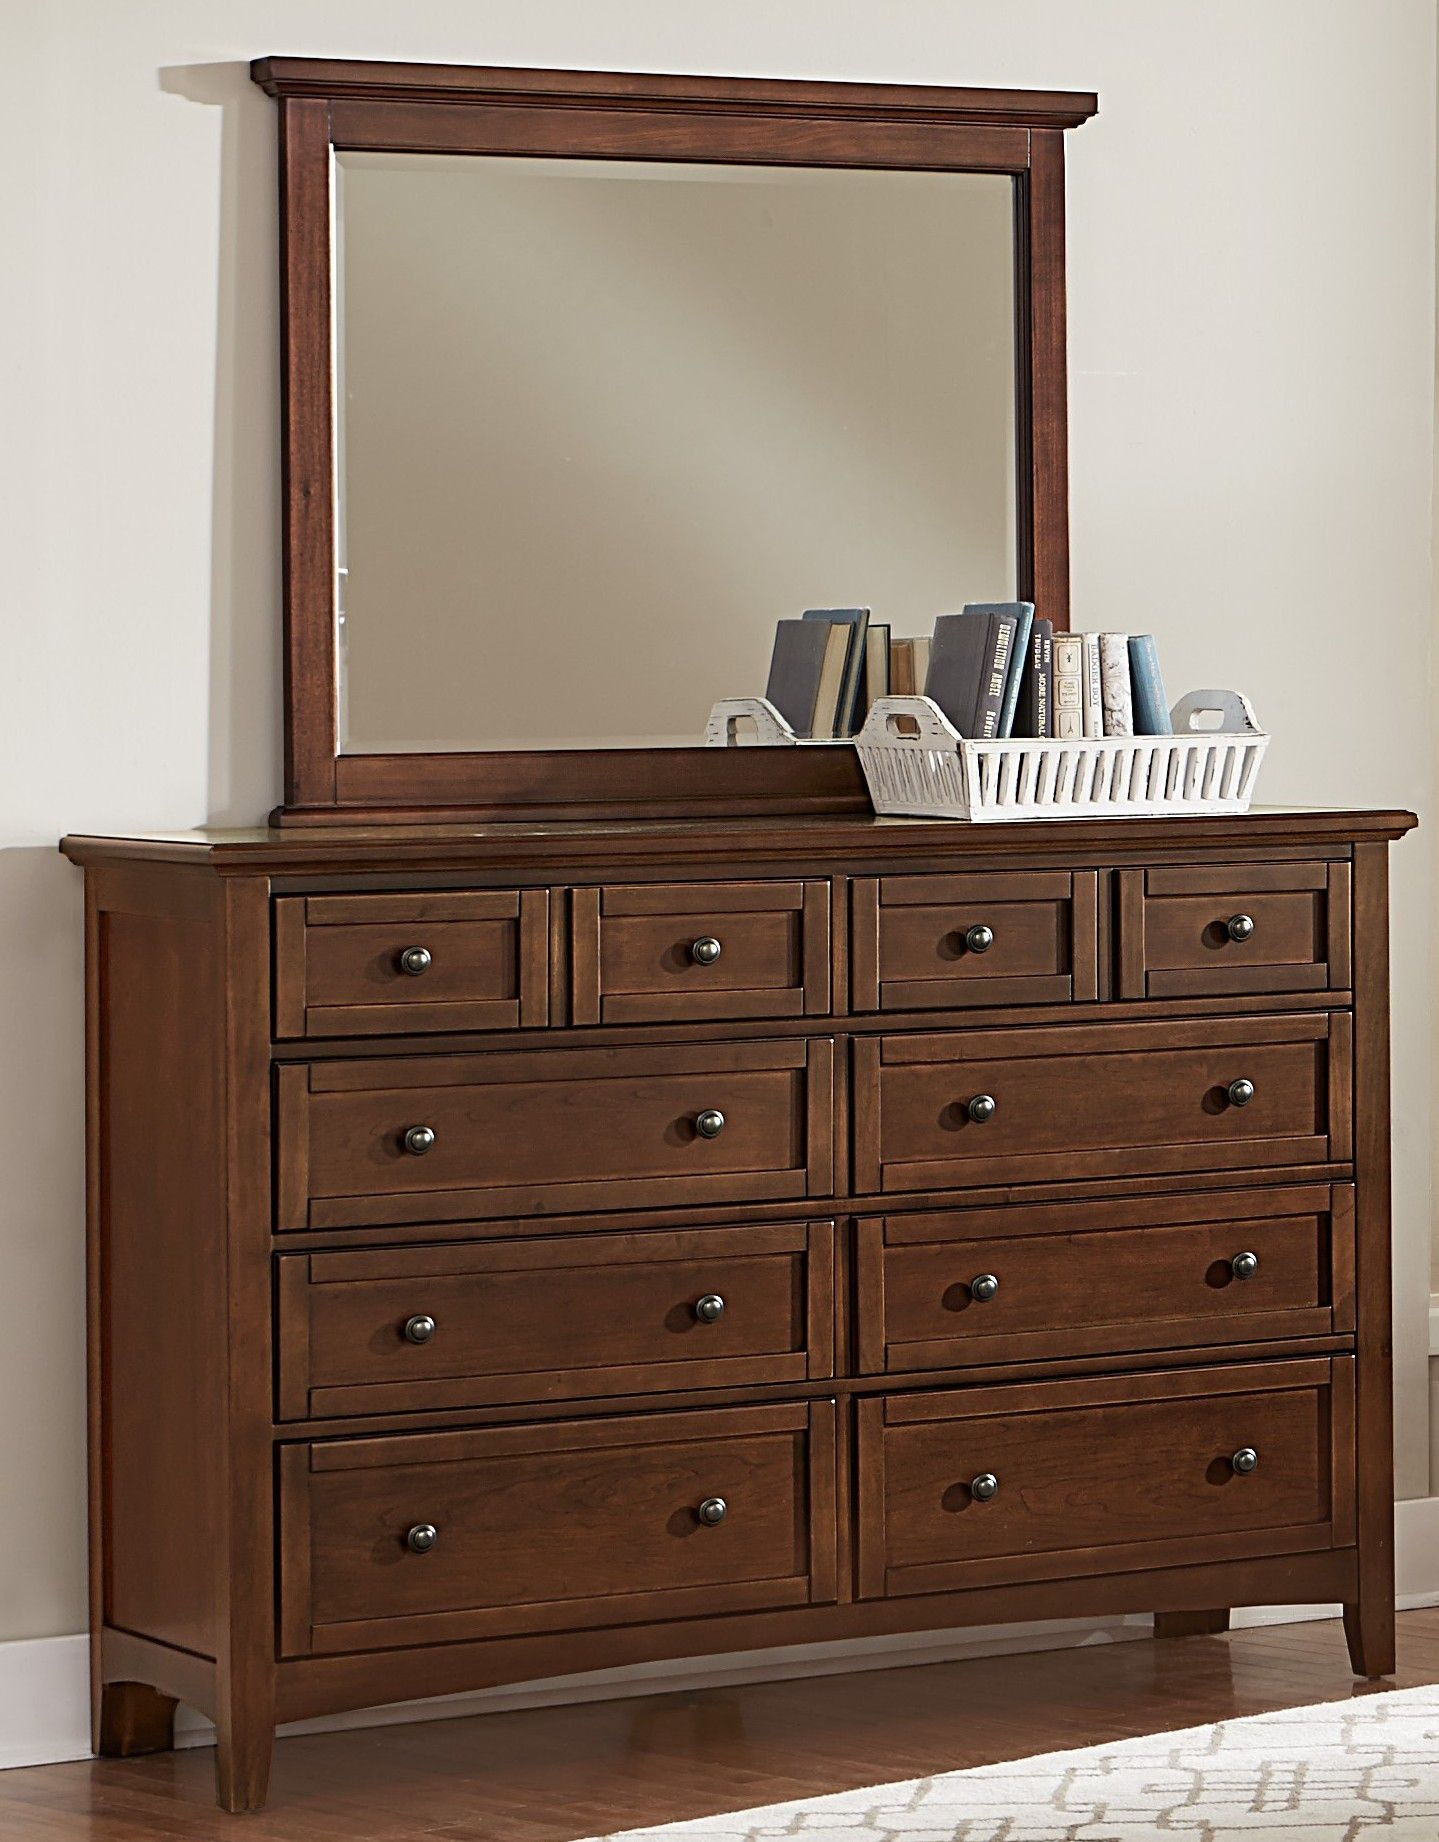 Delicieux Vaughan Bassett Furniture Company Triple Dresser BB28 002